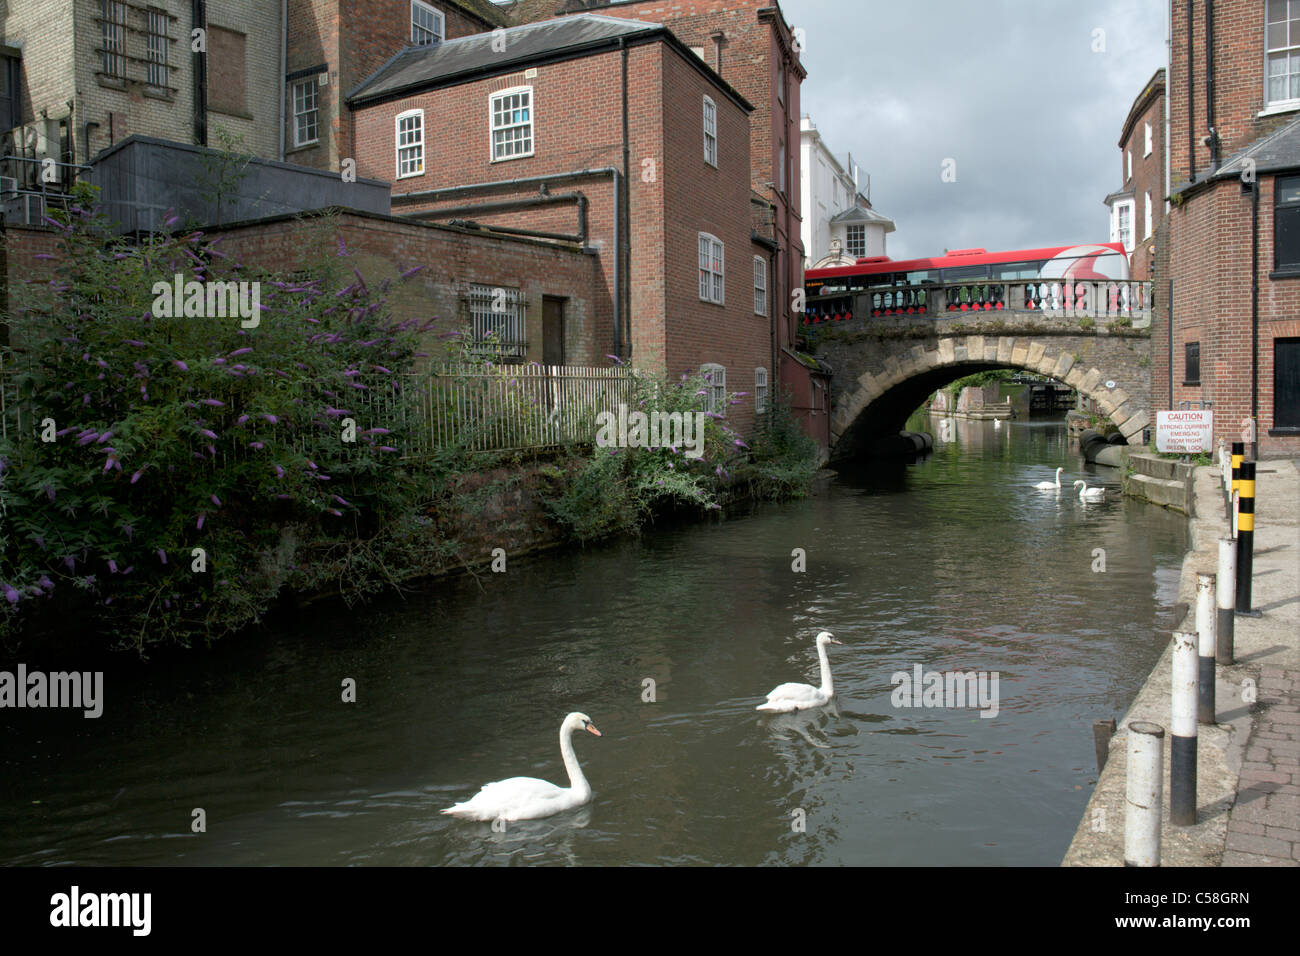 Kennet and Avon canal side with bridge swan and red bus Newbury Berkshire England UK - Stock Image